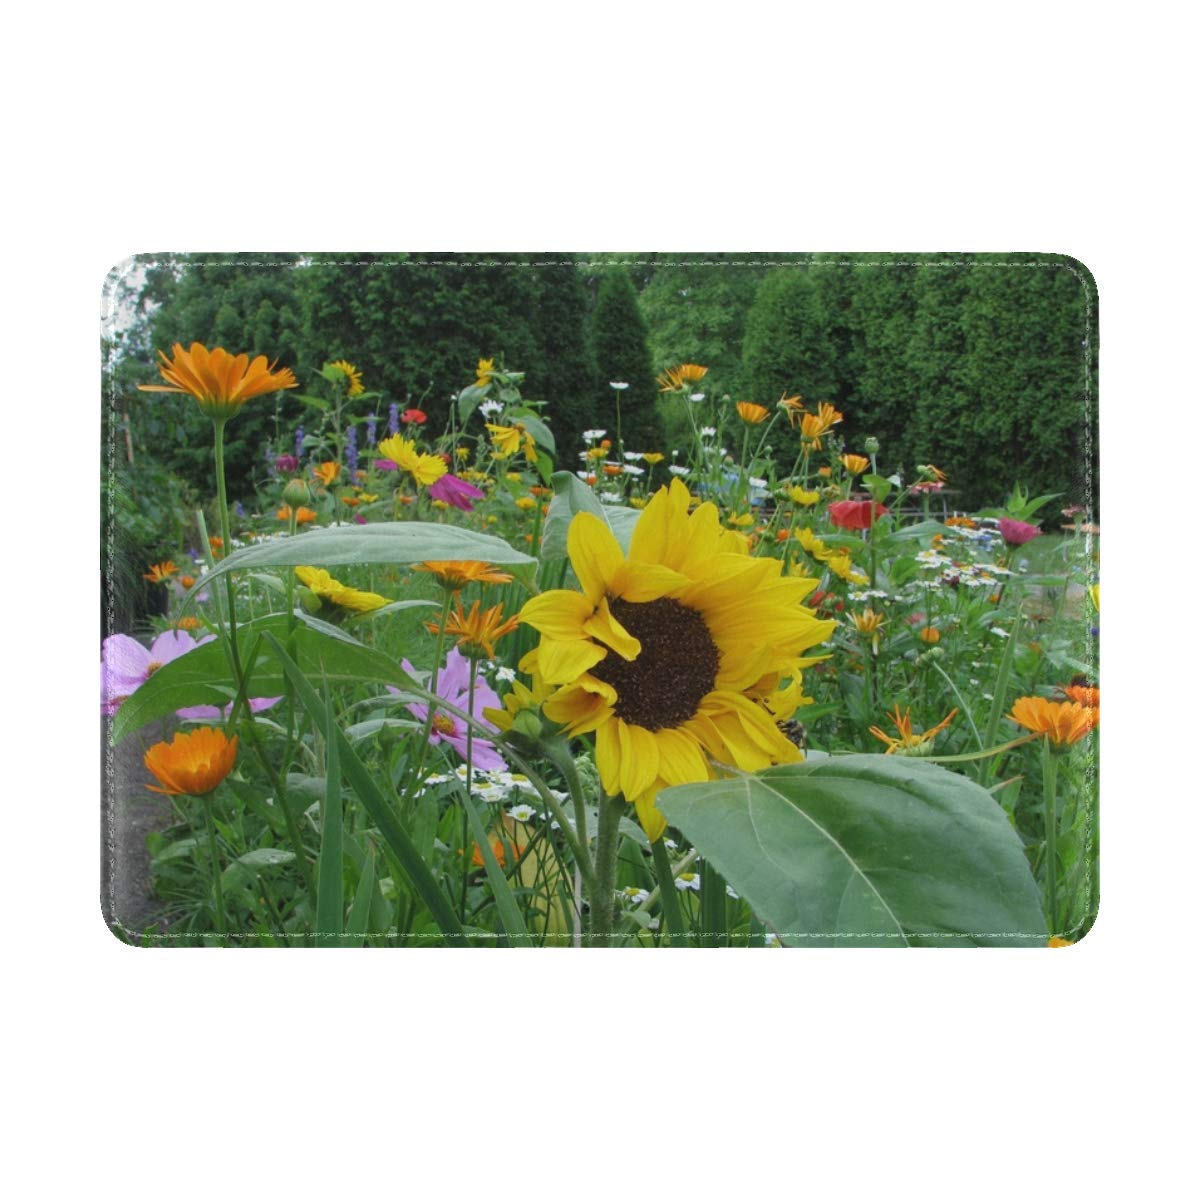 Sunflowers Daisies Kosmeya Flowers Meadow Trees Flowerbed Leather Passport Holder Cover Case Travel One Pocket